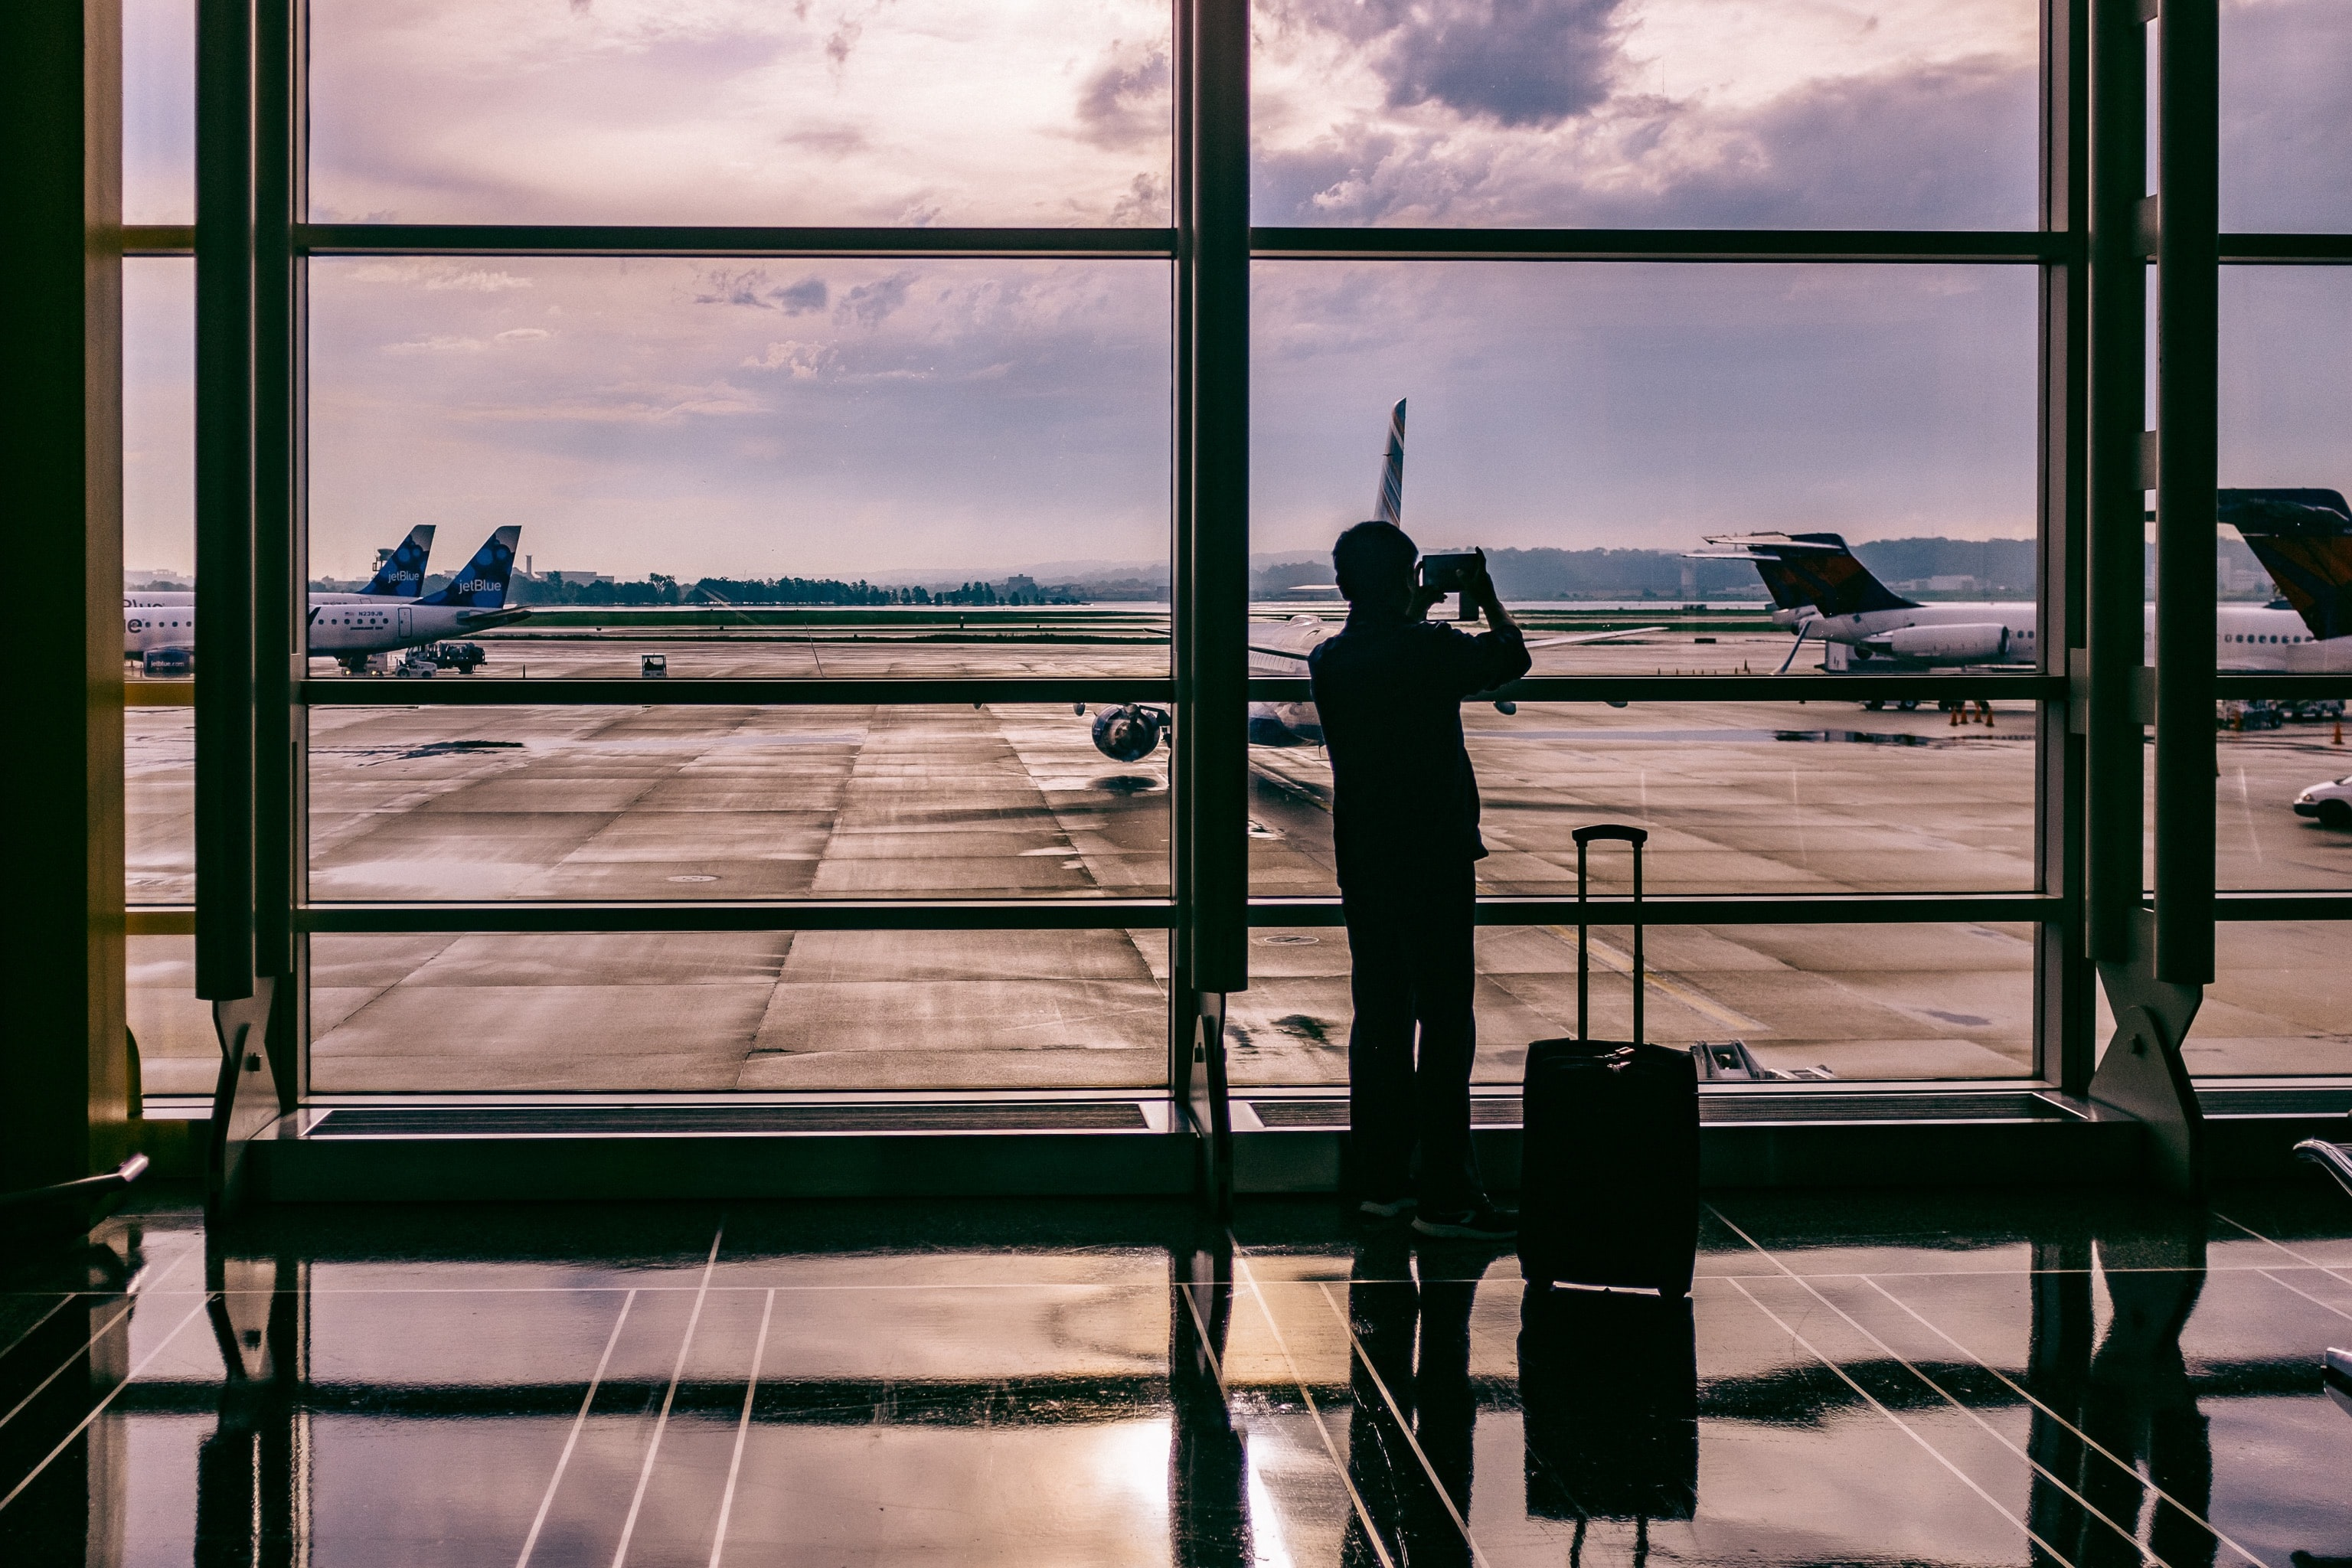 silhouette of person standing in front of glass while taking photo of plane